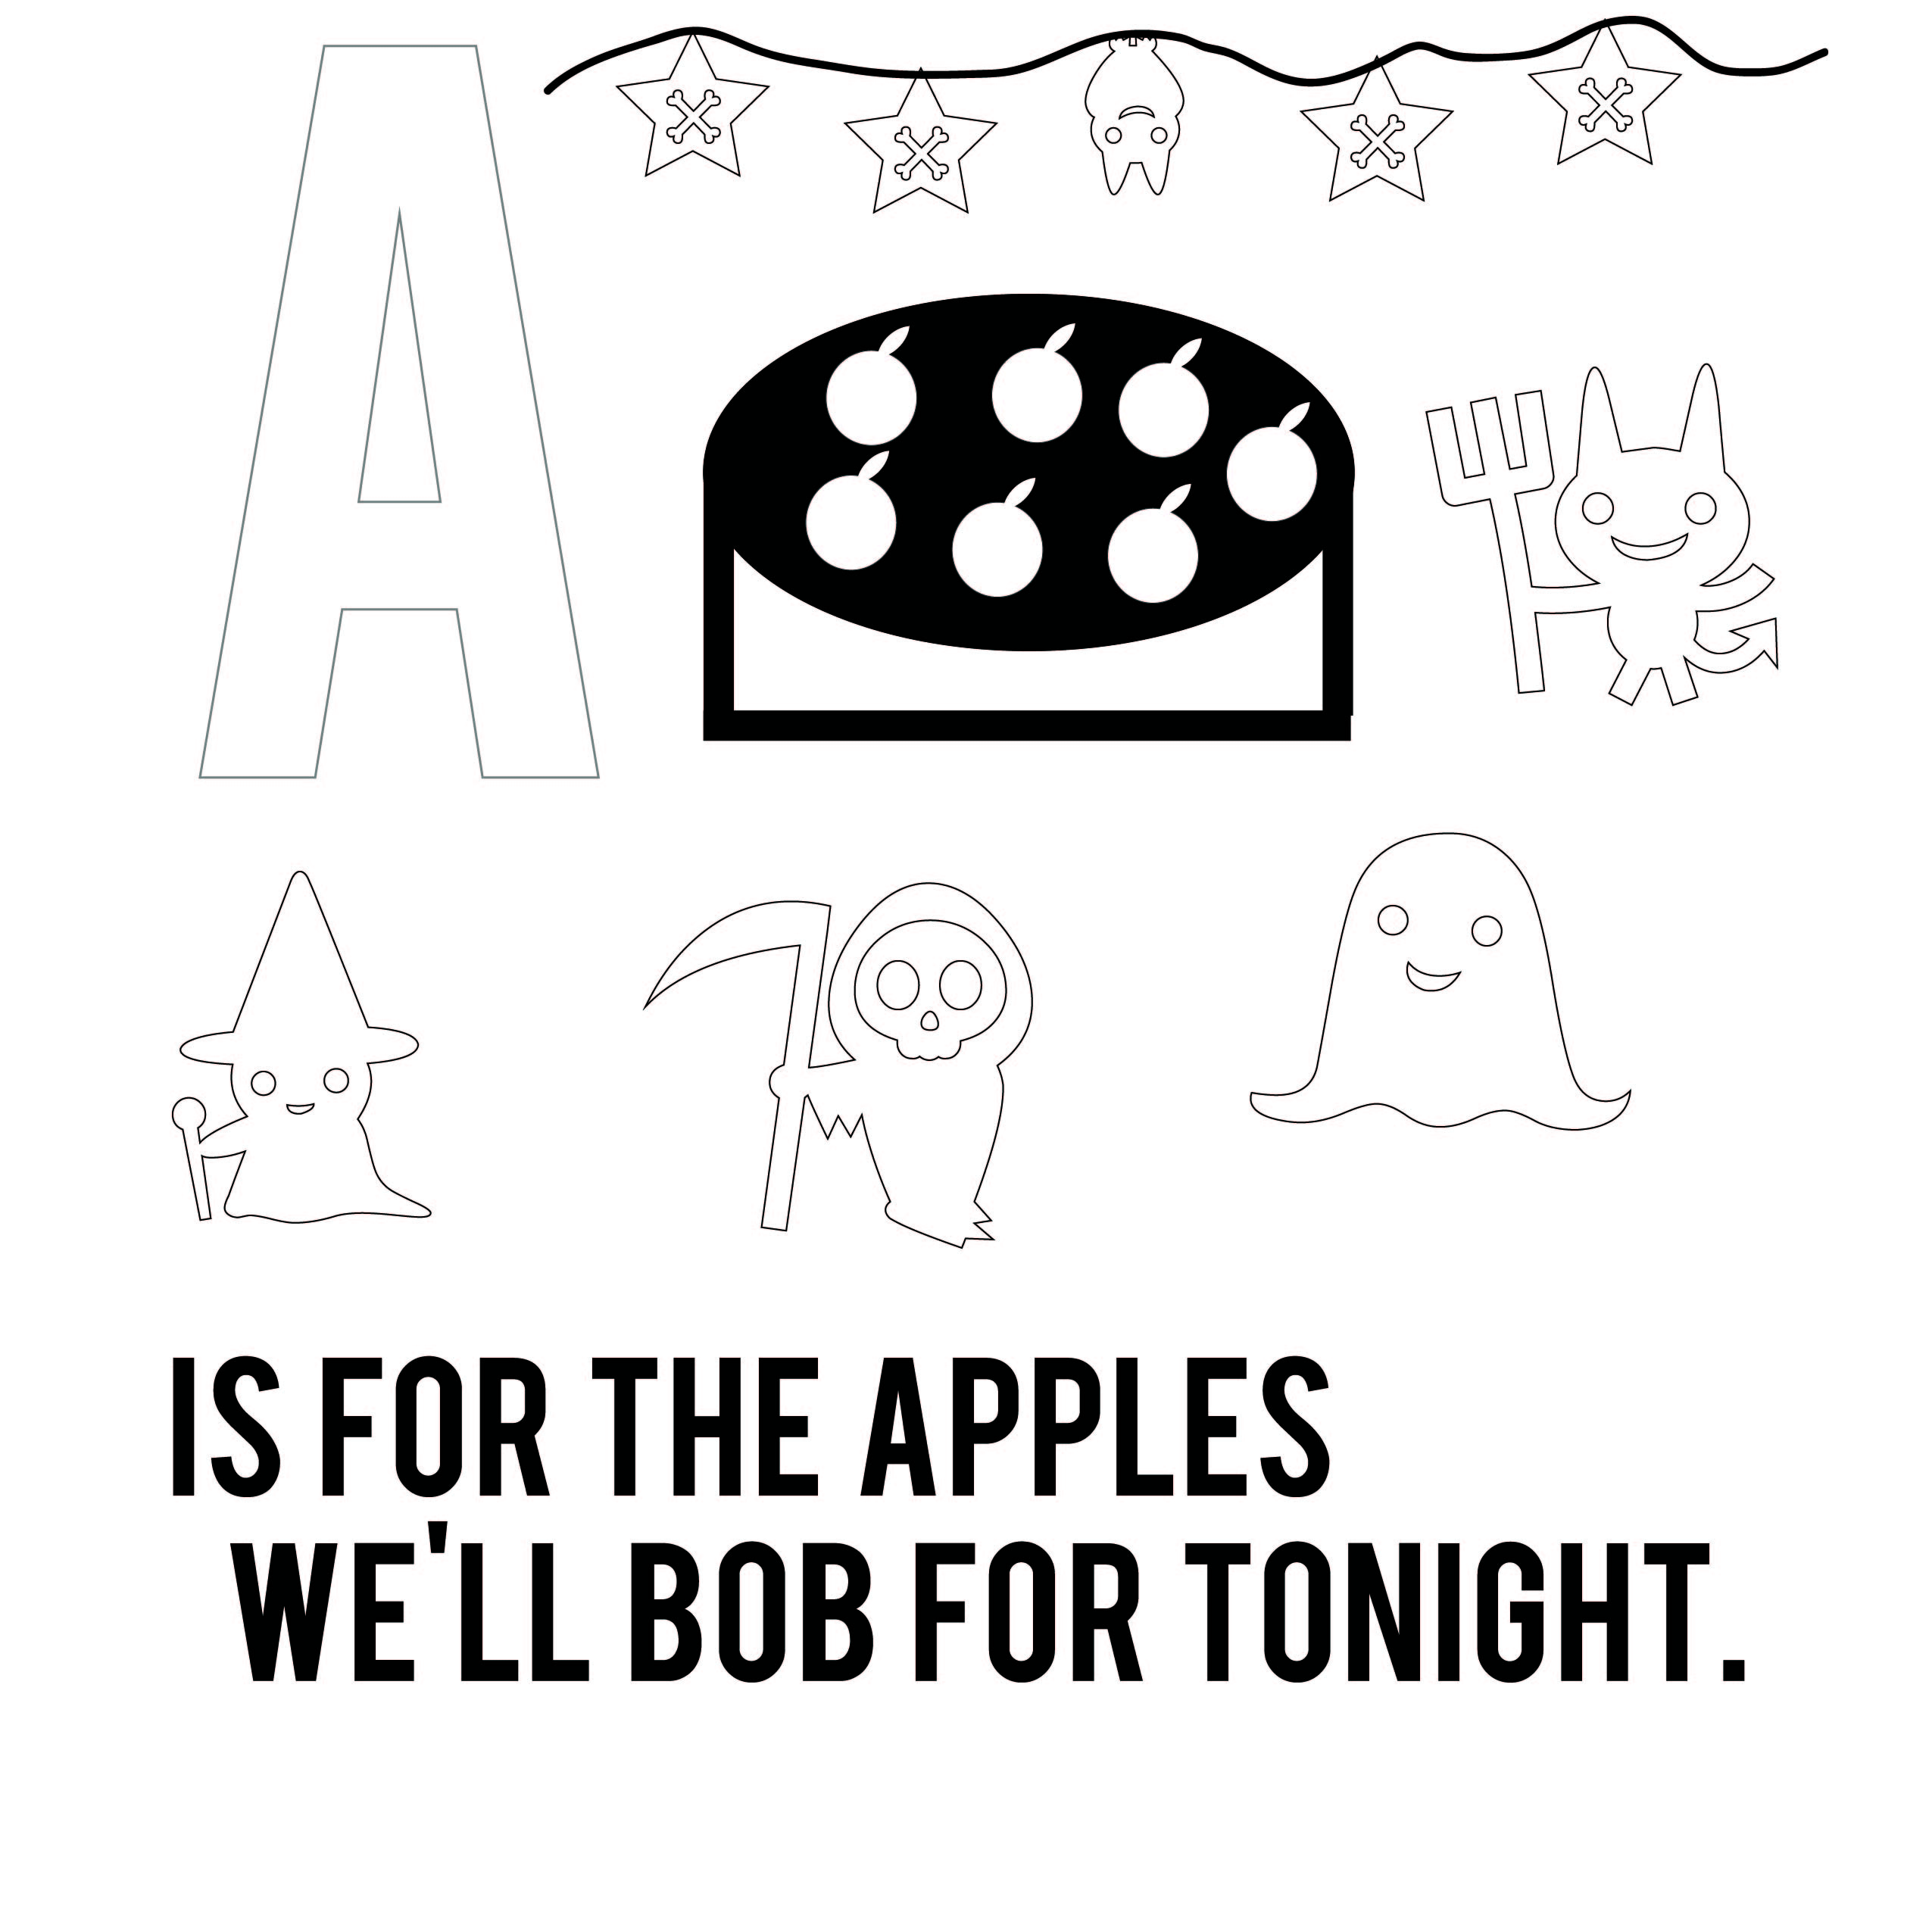 Coloring Page from All Hallow's ABC by Jenni Kaye